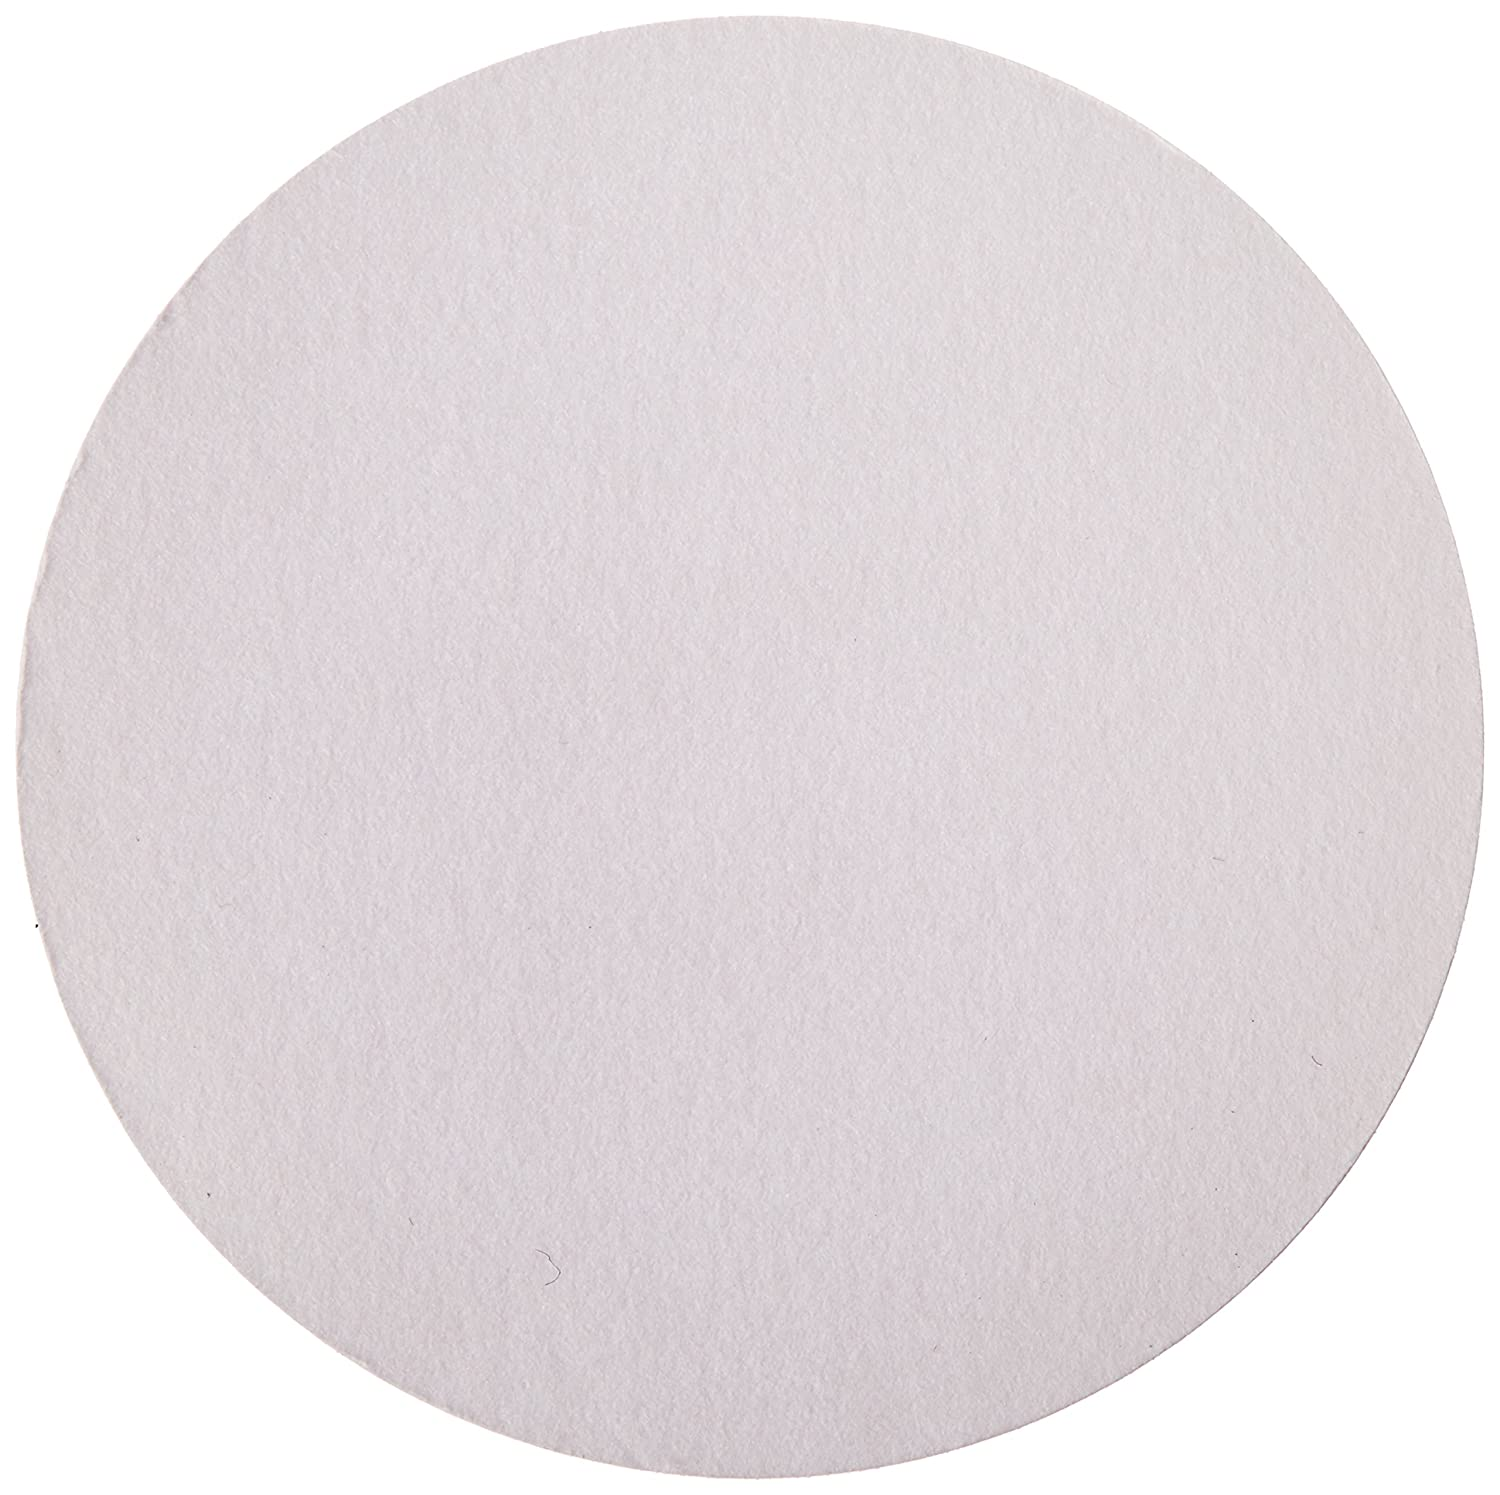 Whatman 4712F15PK 1002055 Grade 2 Qualitative Filter Paper, 55 mm Thick and Max Volume 285 ml/m (Pack of 100) GE Healthcare